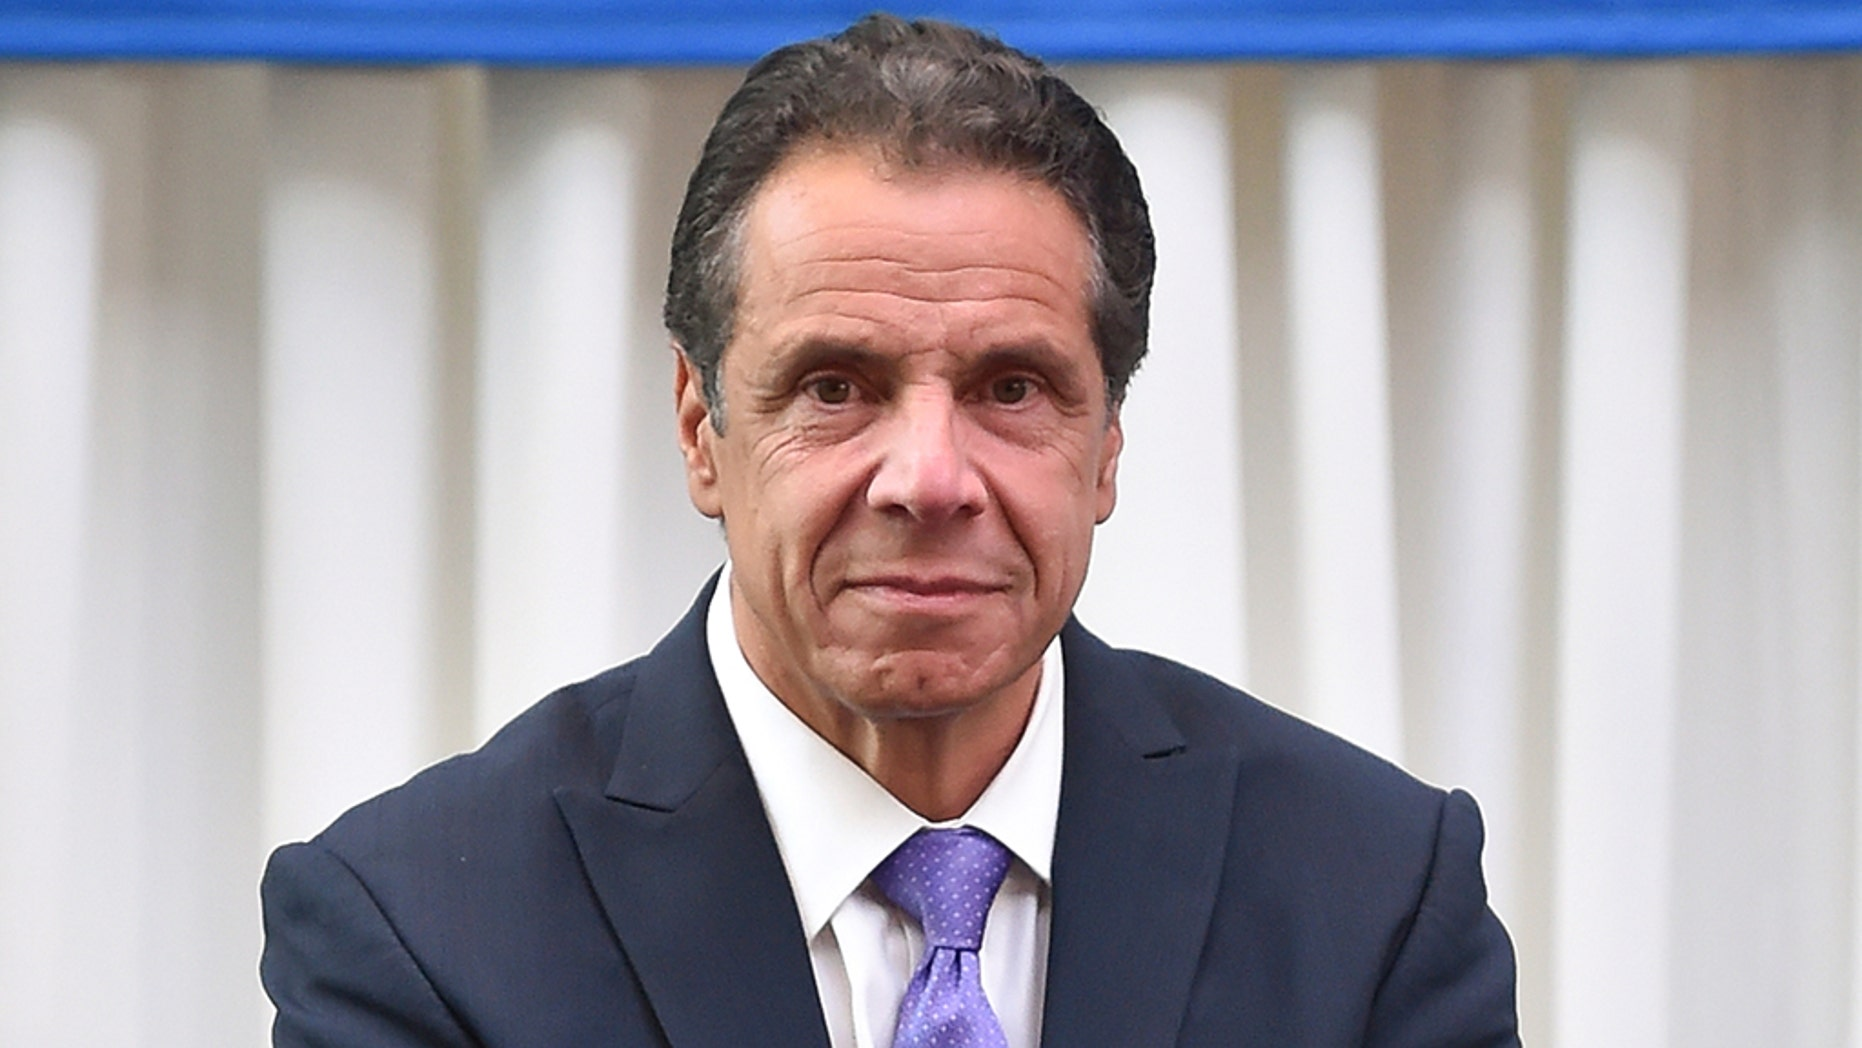 Governor Of New York 2020 Michael Goodwin: Is New York Governor Cuomo poised for 2020 after